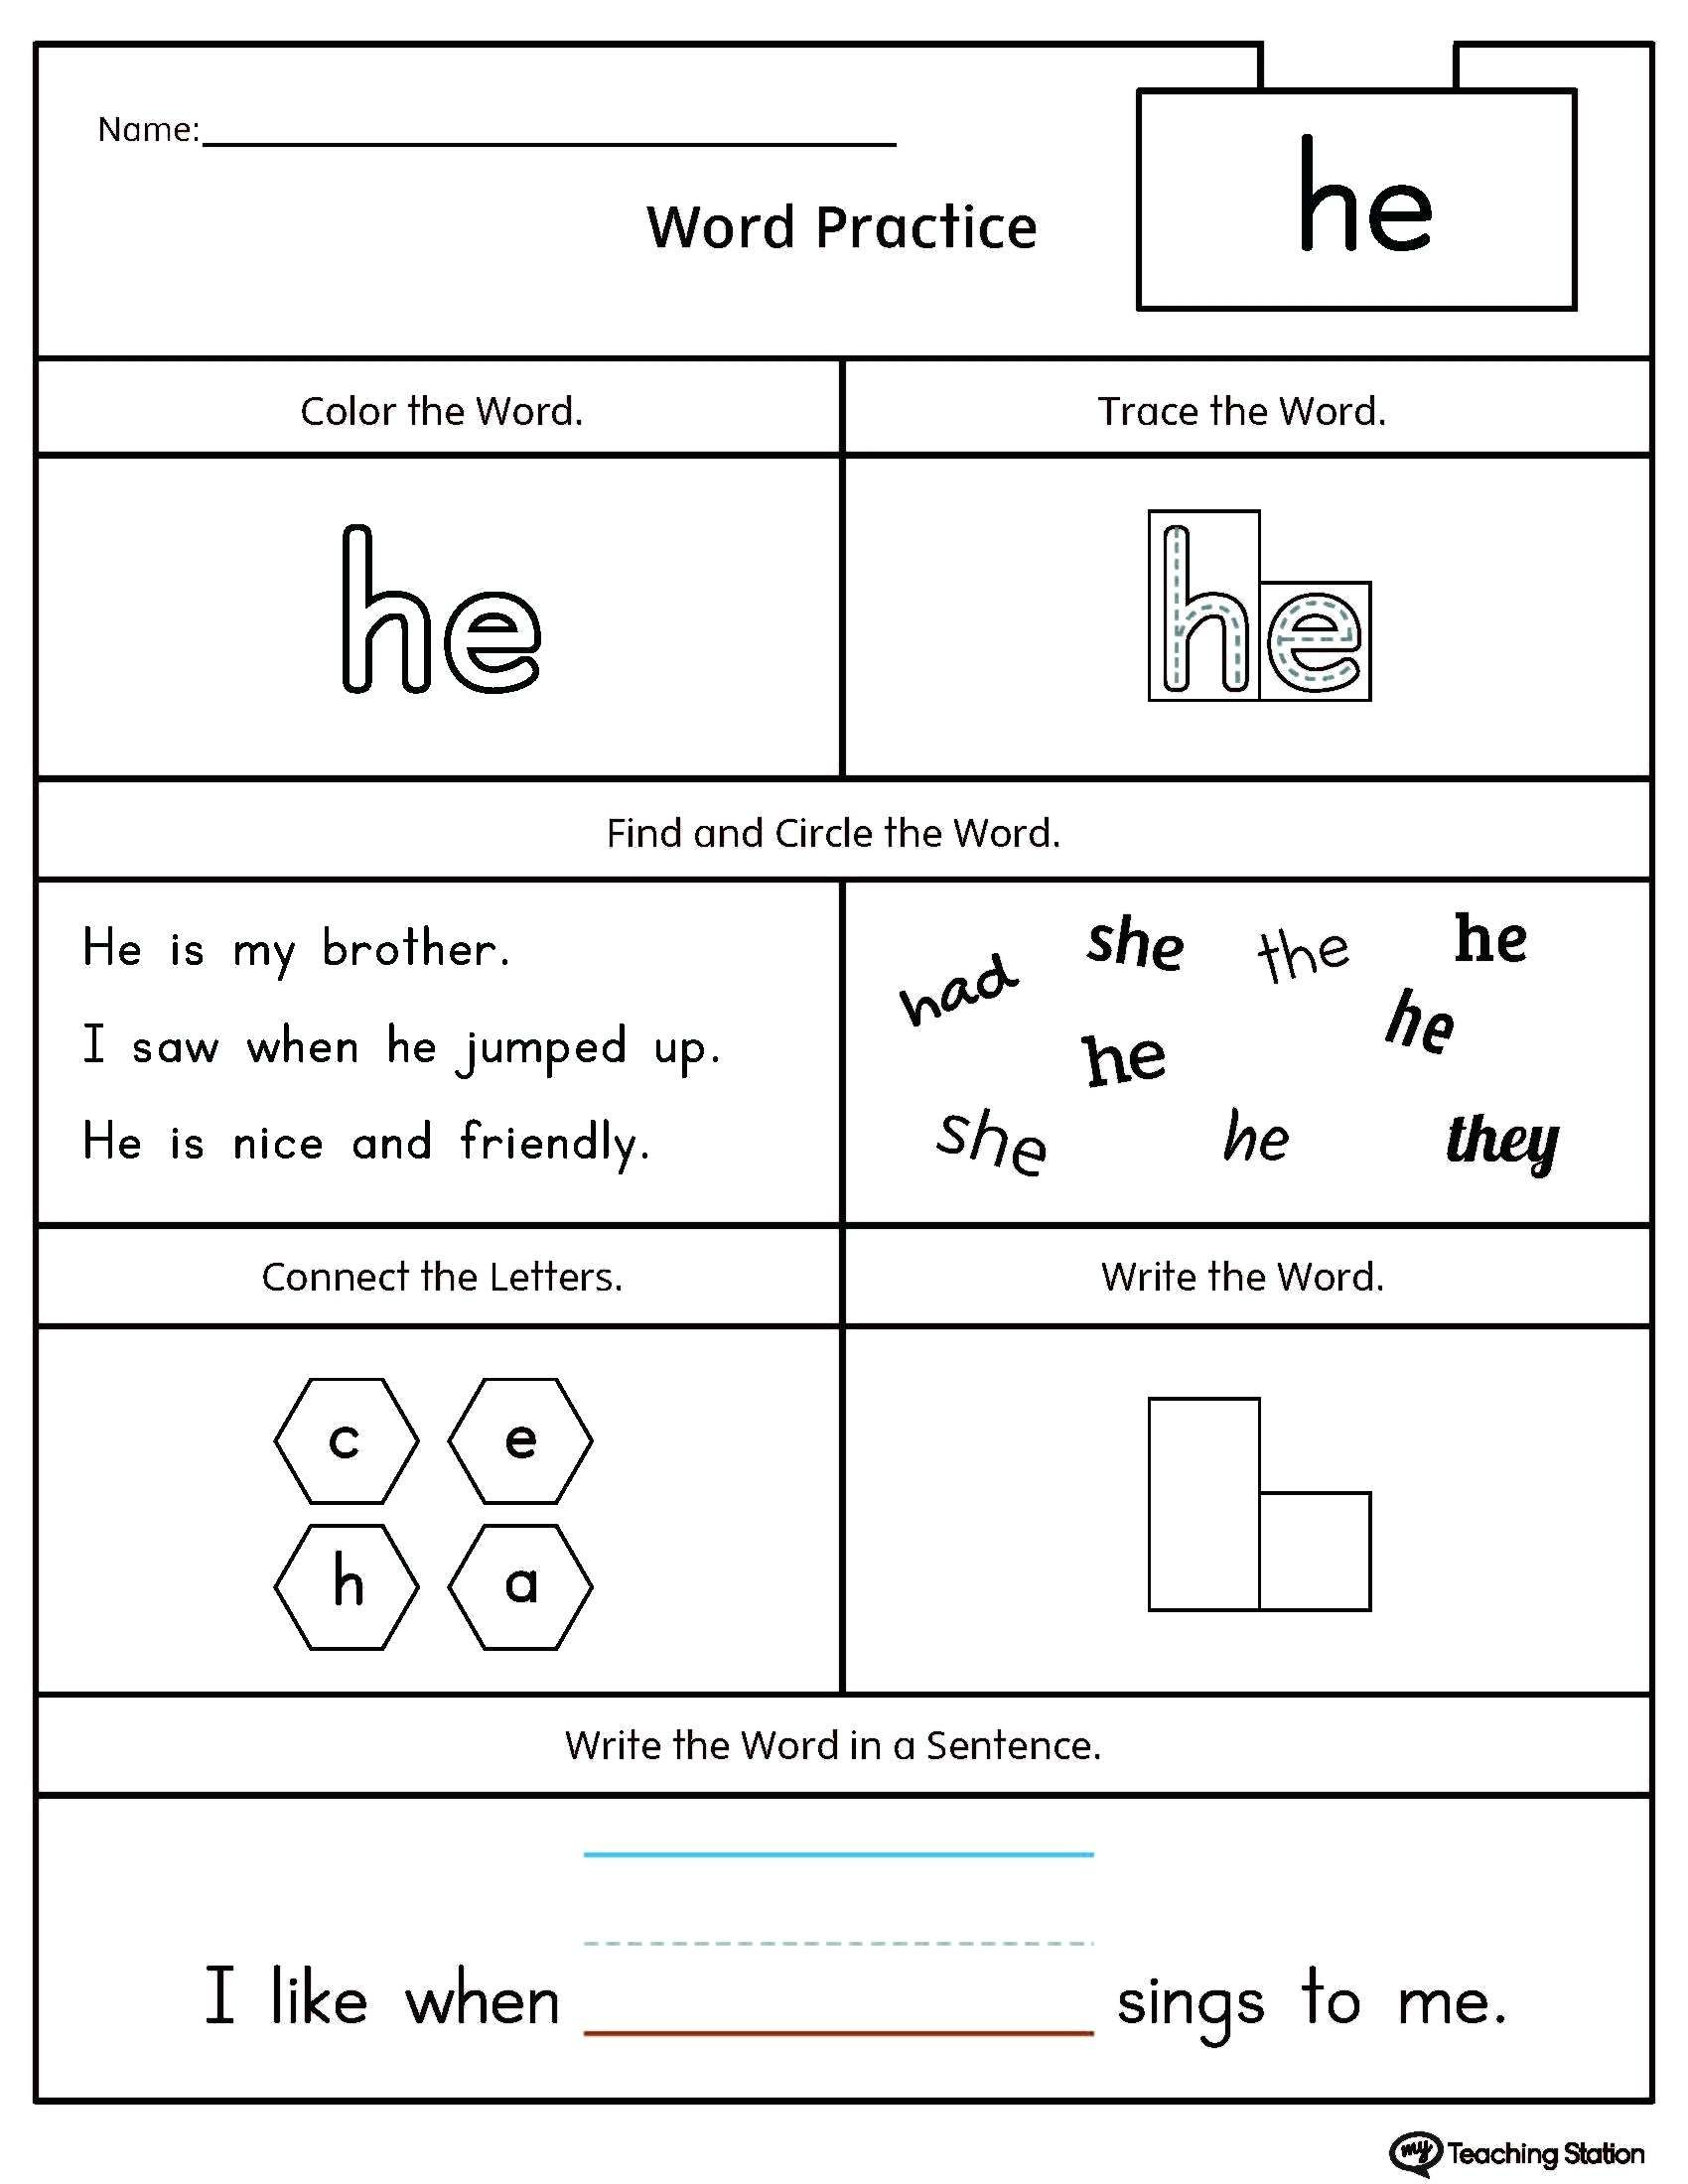 4 Kindergarteen Worksheets Sight Words Letters Sight Word Practice Worksheet Kindergarten Worksheets Sight Words Sight Words Kindergarten Sight Word Worksheets